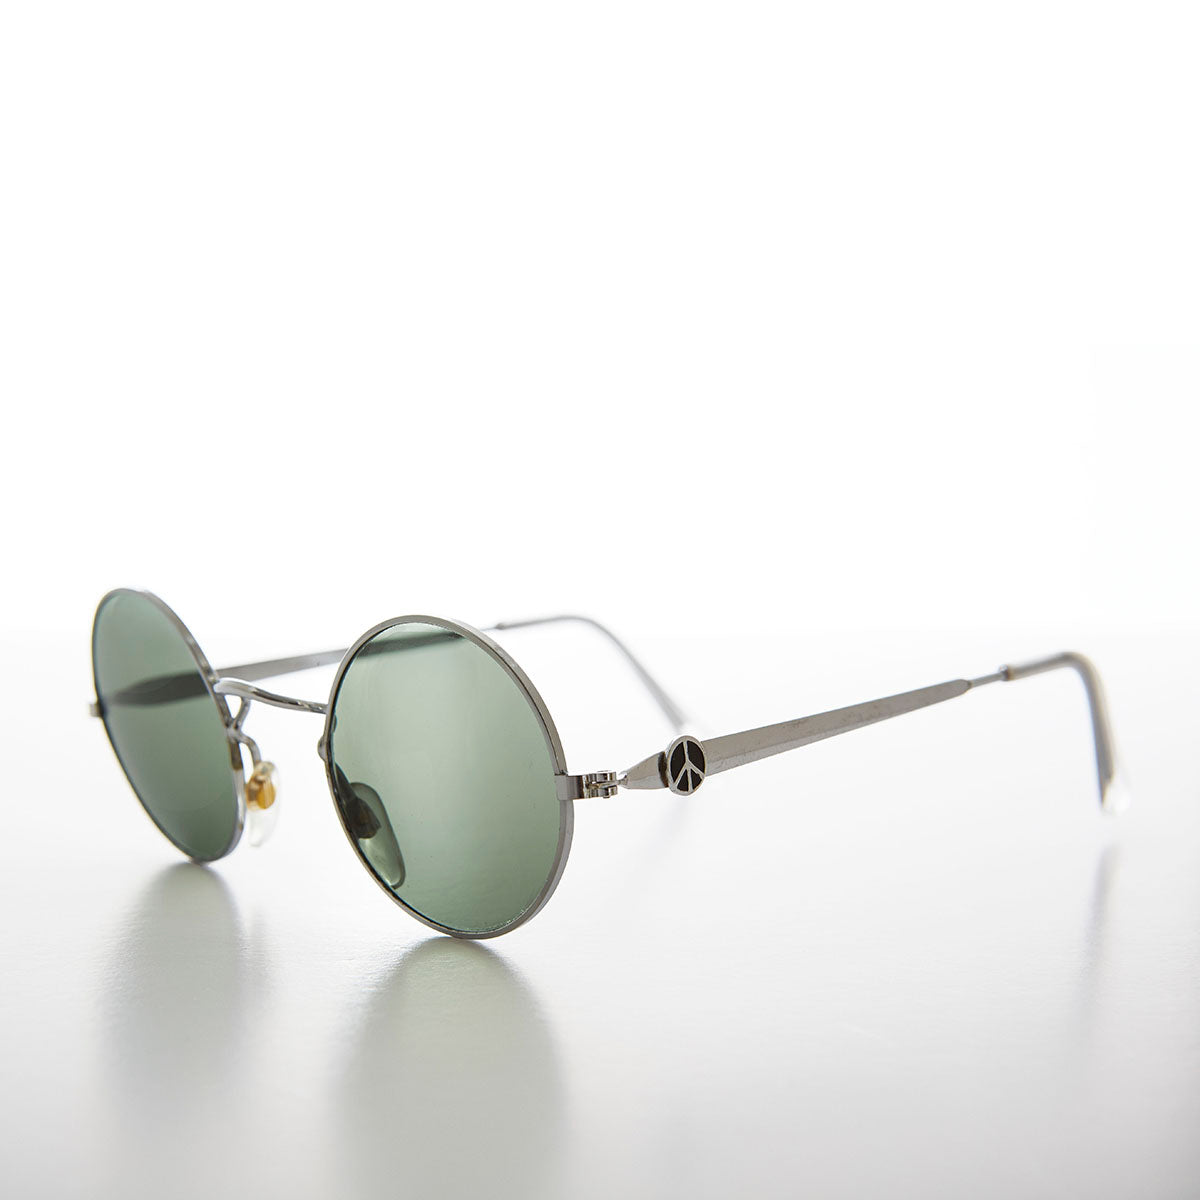 Silver John Lennon Sunglasses with Peace and Glass Lens